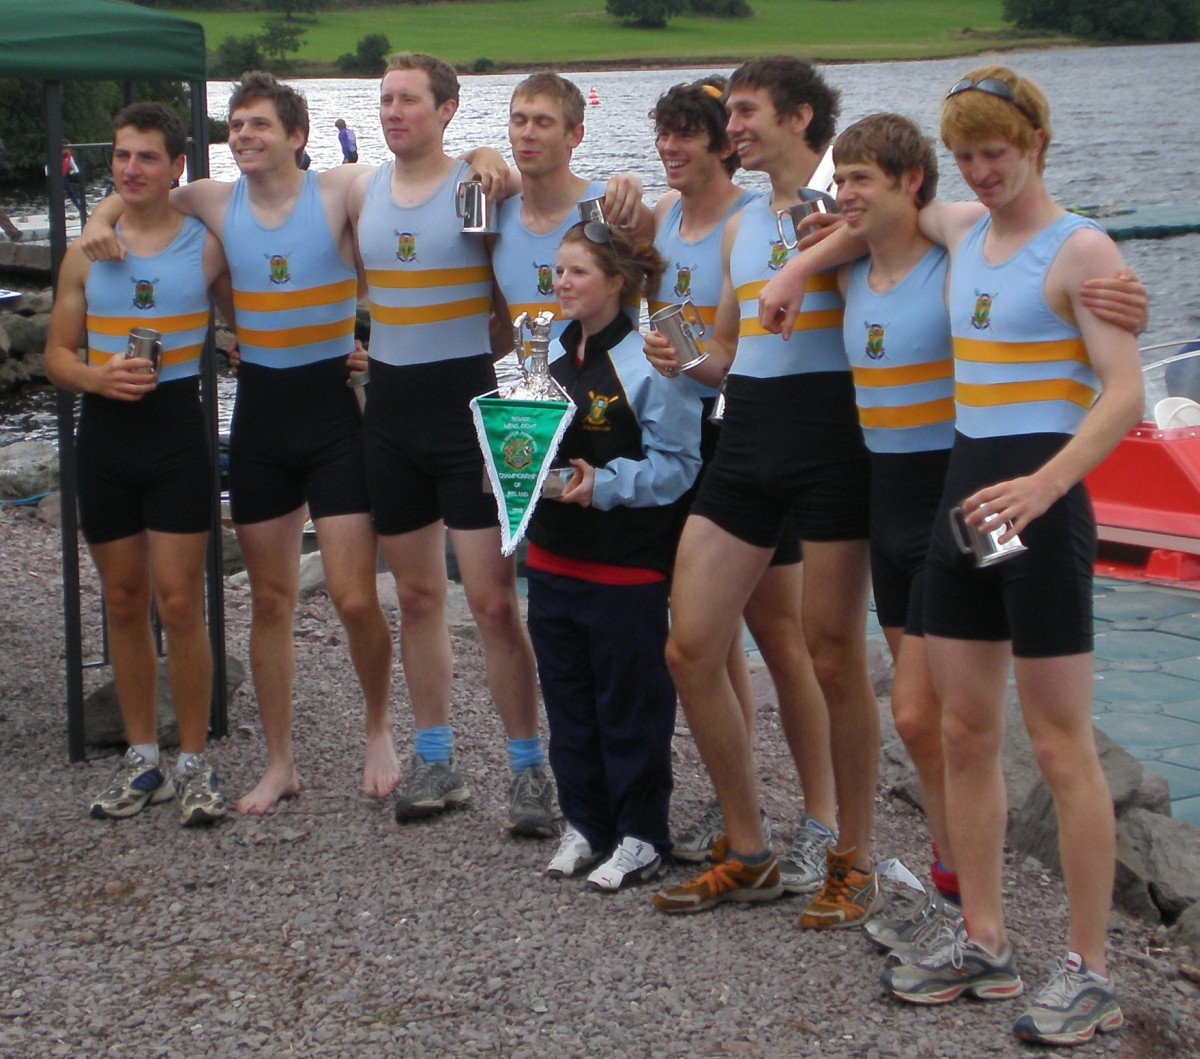 UCD Mens Novice 8+, National Champions 2008